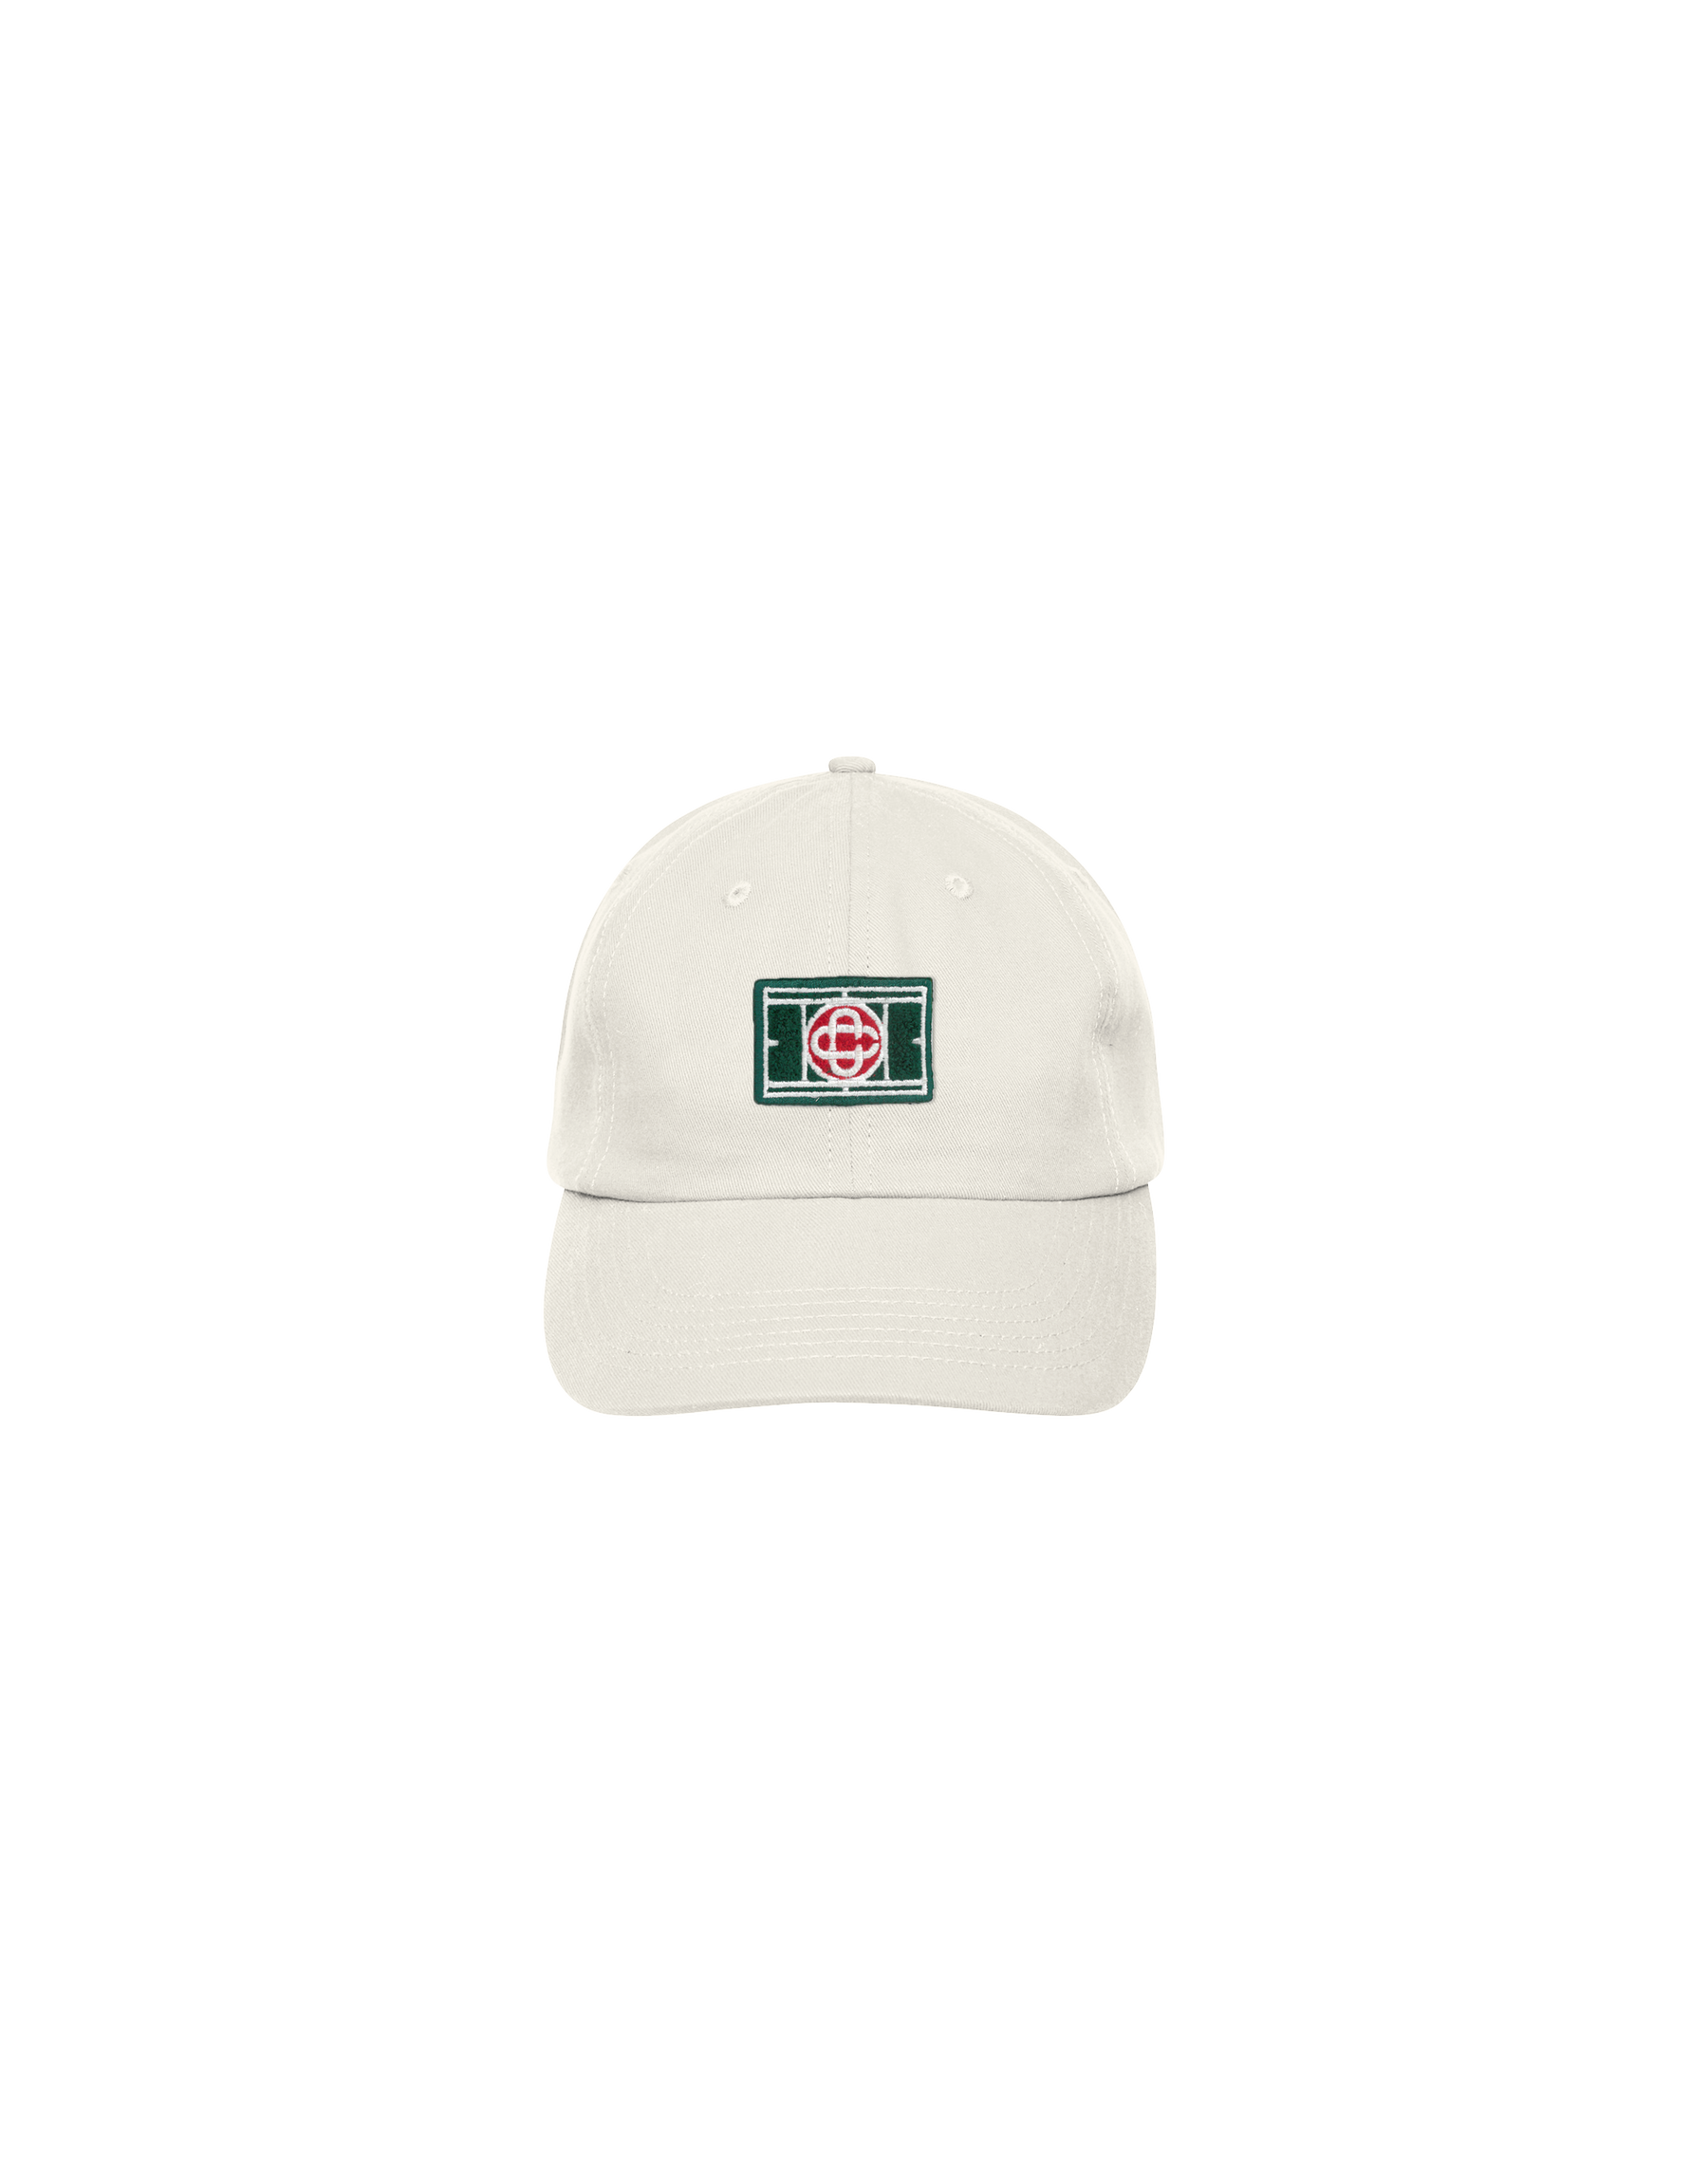 Off White Casablanca Tennis Court Cap